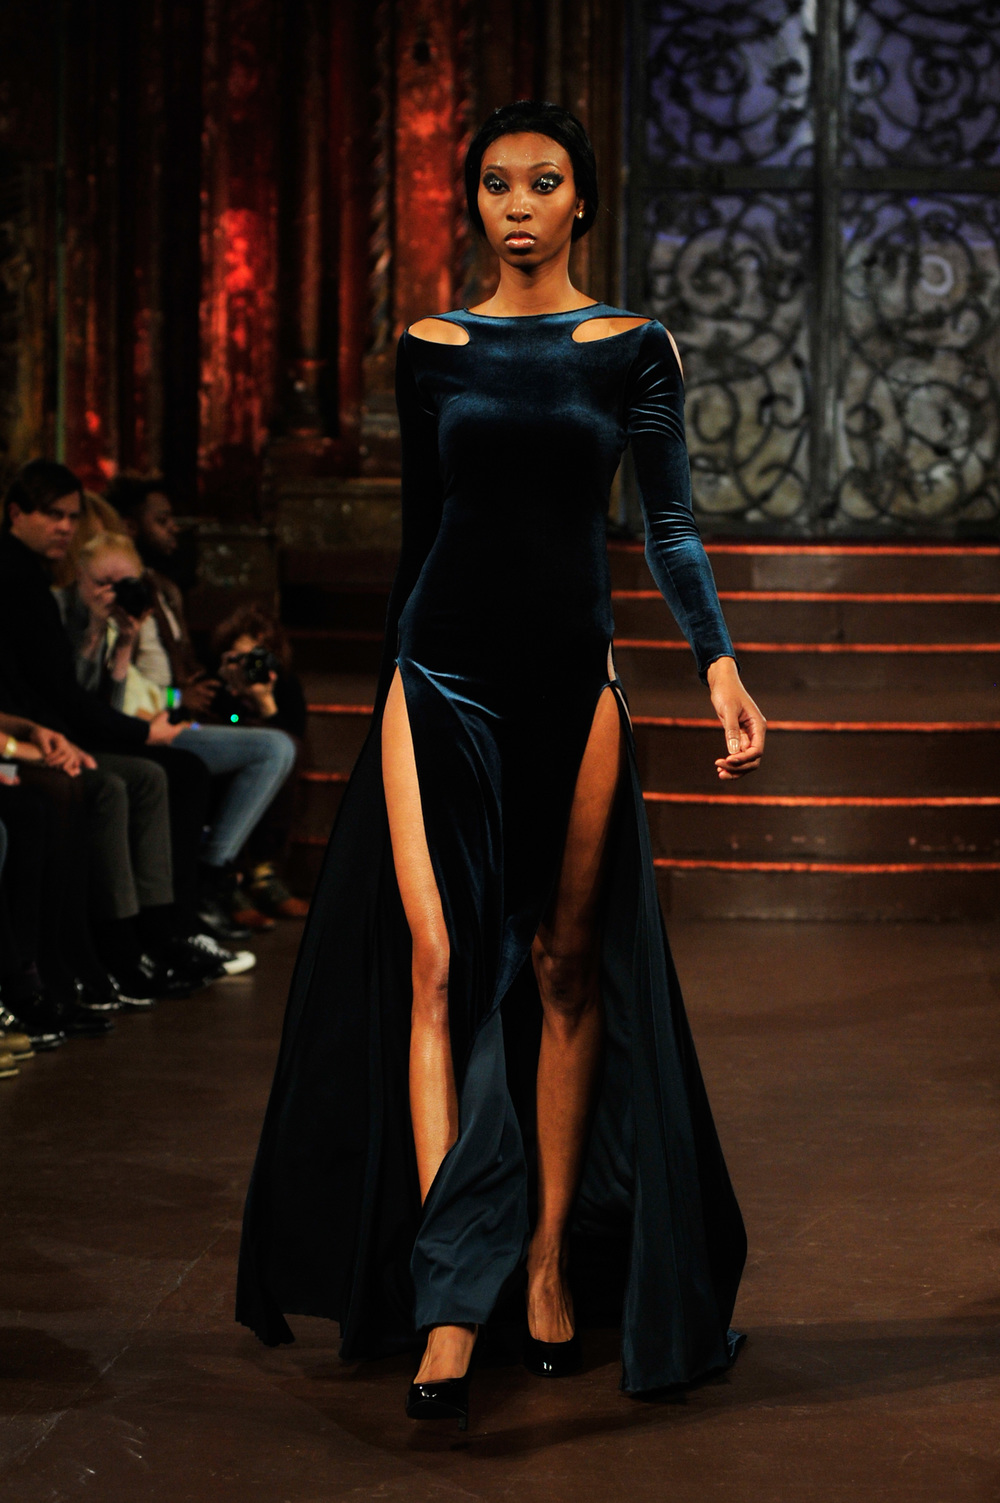 Serbia Fashion Week At Art Hearts Fashion Presents Zvonko Markovic Couture